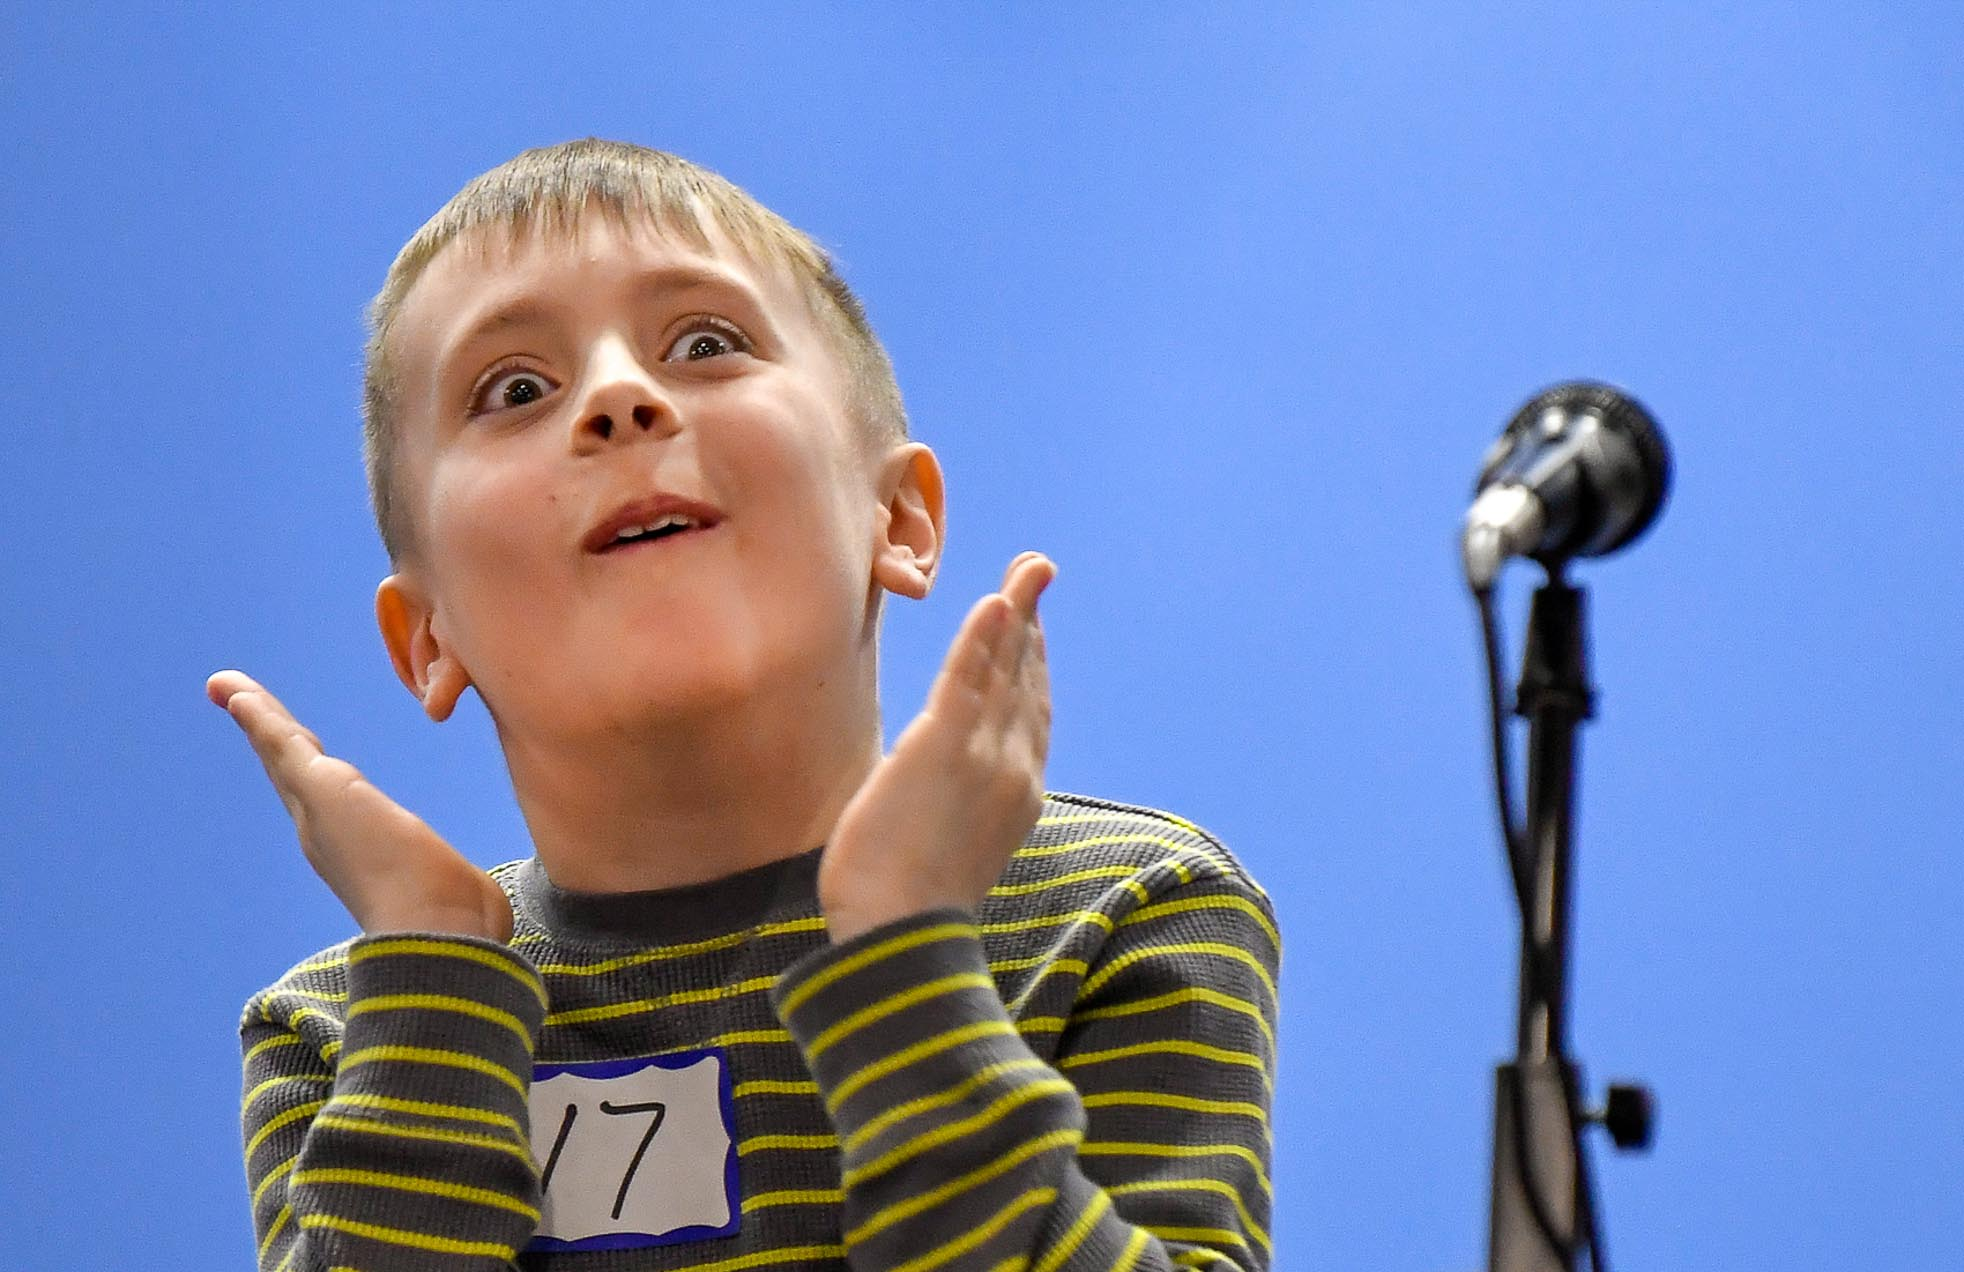 Third Place Personality:  Fourth grade student Hayden Mayhugh gets excited as he moves closer towards the final round and eventually became the first place winner in the fourth grade division of the annual Penn Brook Spelling Bee on Wednesday, March 21, 2018. [Wicked Local Staff Photo / David Sokol]